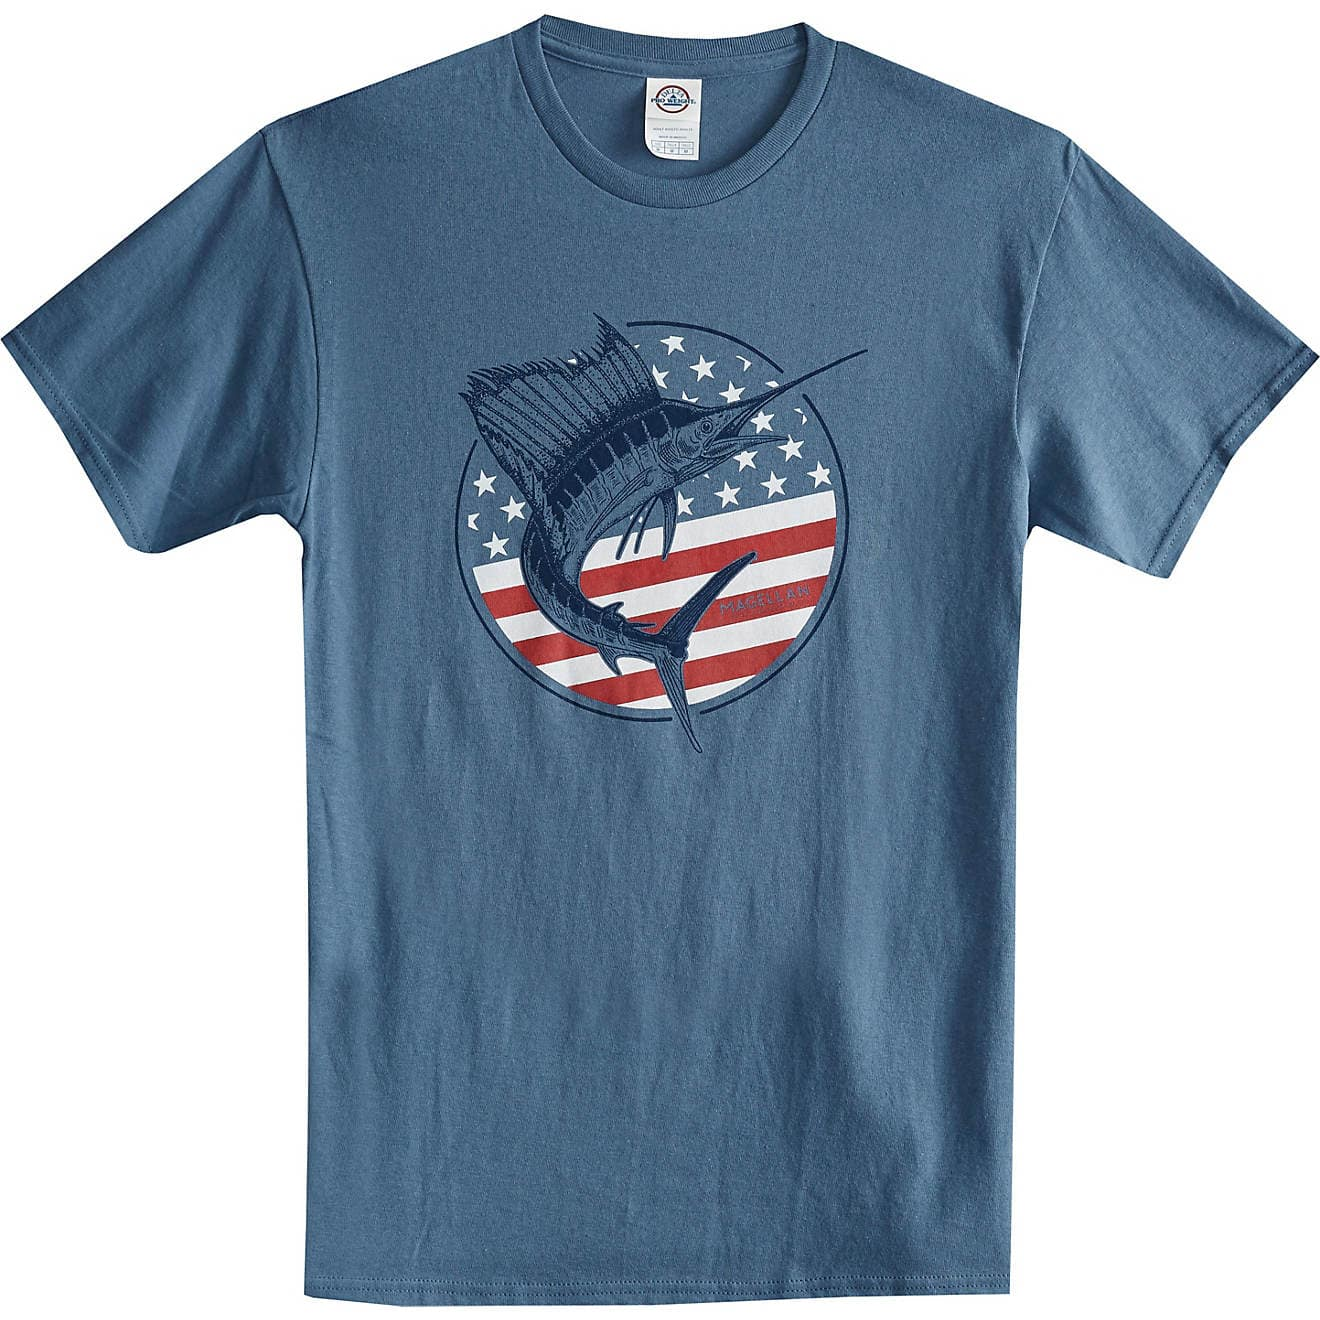 Patriotic Apparel: Various Men's, Women's and Kid's Tees $5, Men's Caps $5, More + Free Store Pickup at Academy Sports or FS on $25+